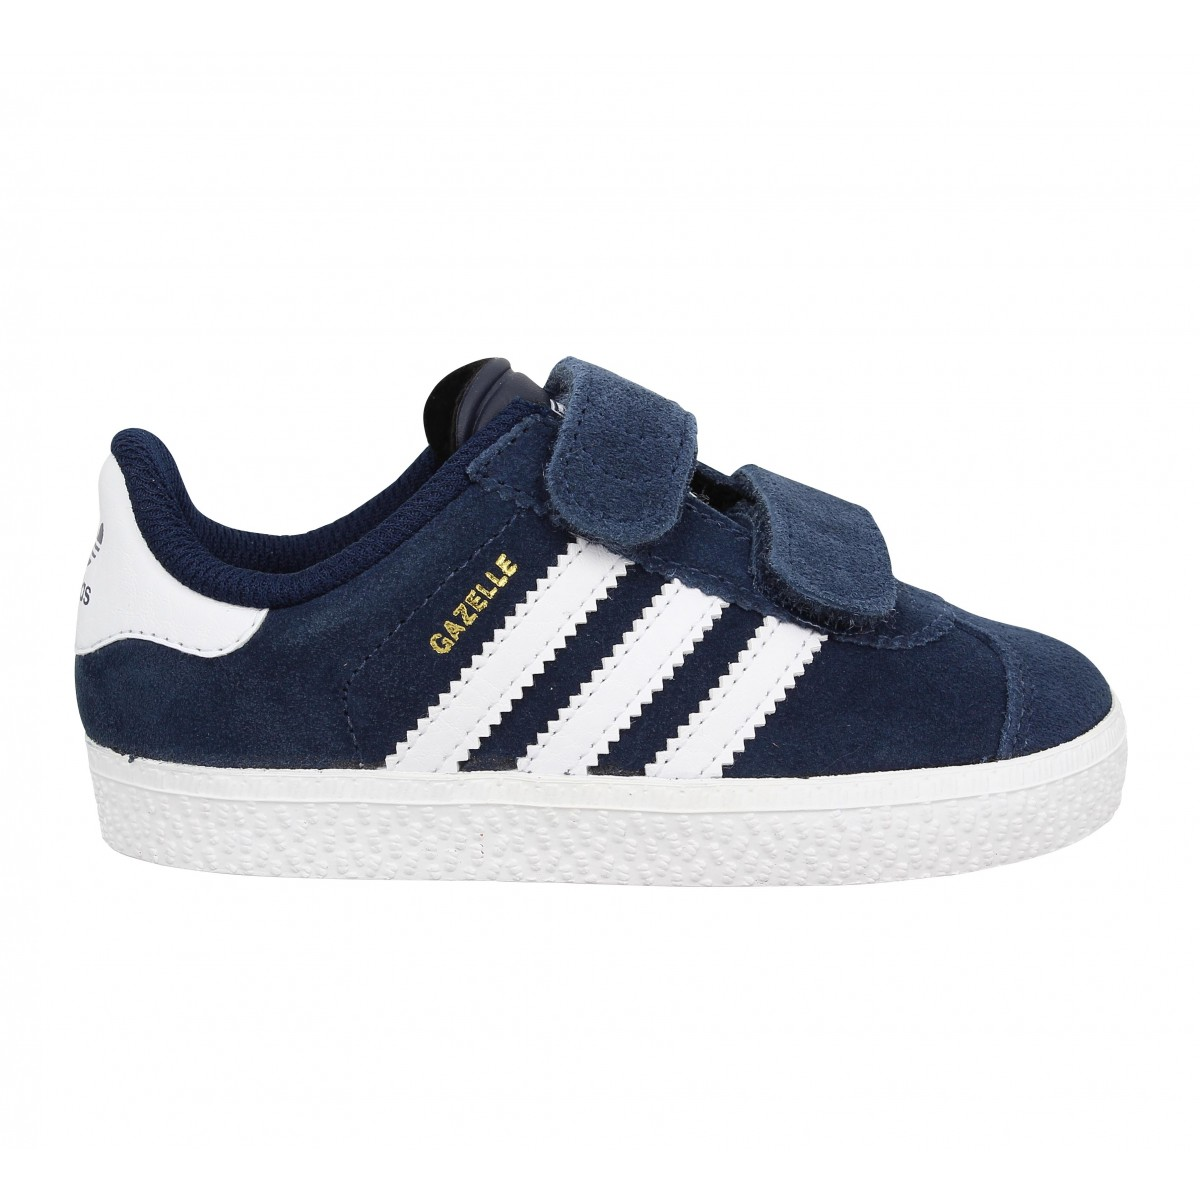 soldes adidas gazelle 2 velcro enfant navy fanny chaussures. Black Bedroom Furniture Sets. Home Design Ideas